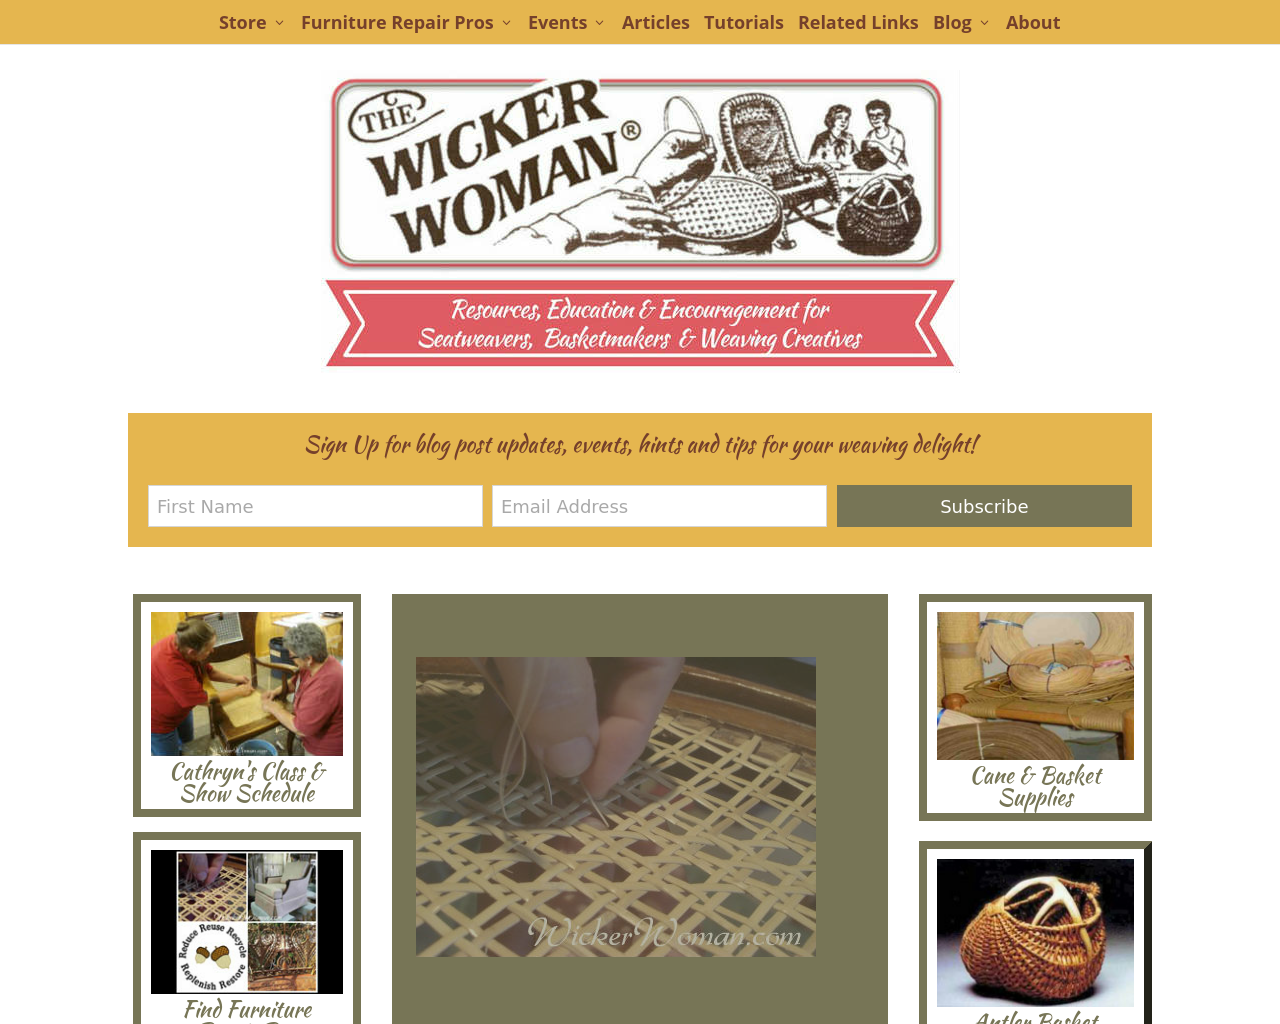 The-Wicker-Woman-Advertising-Reviews-Pricing